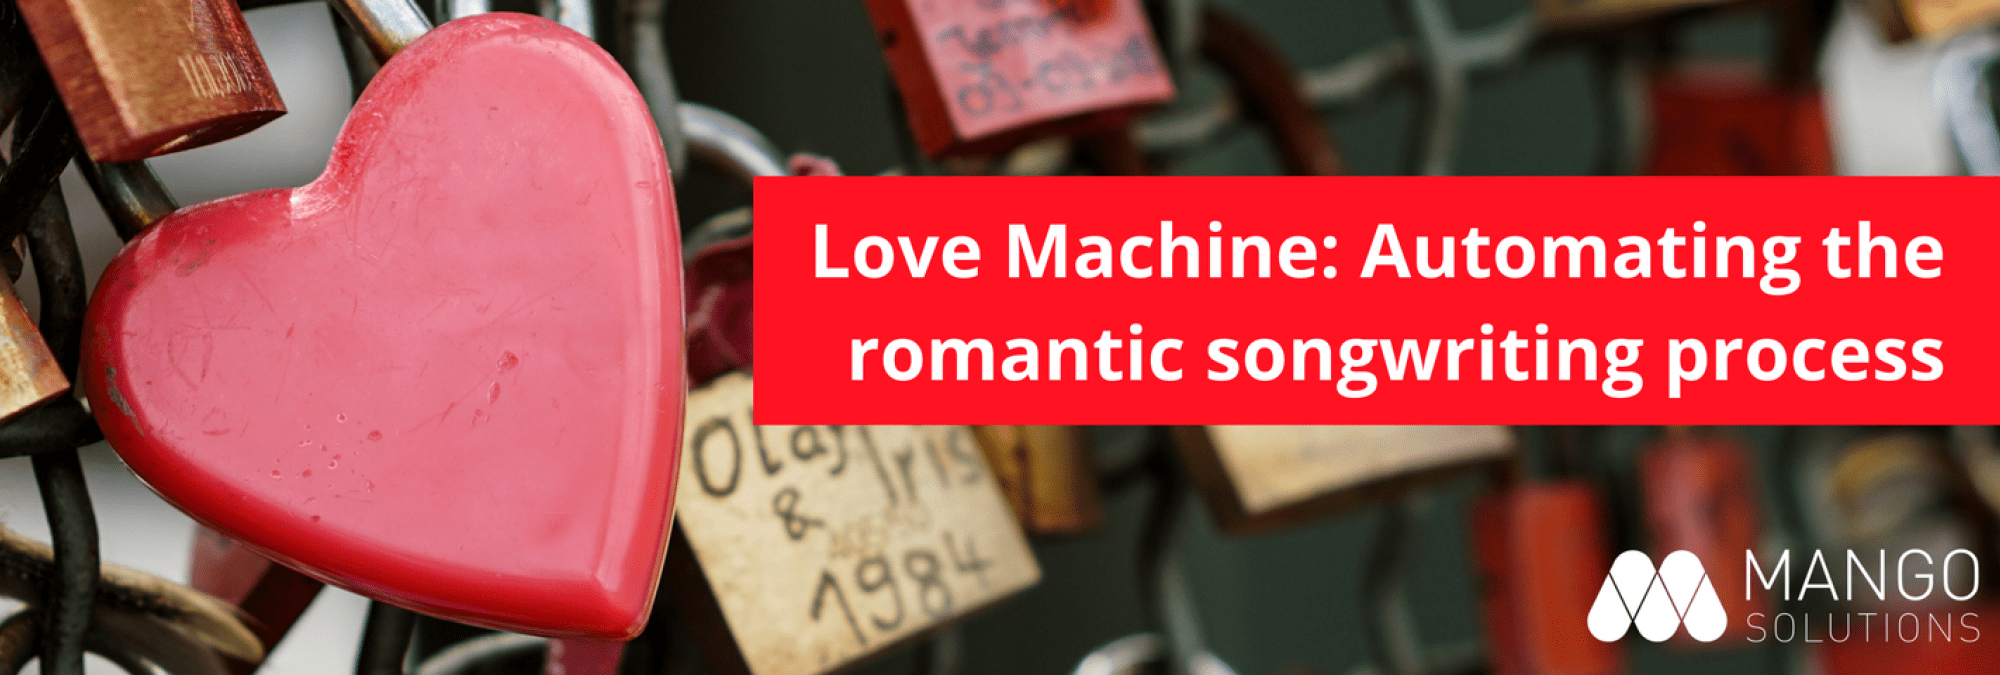 Love Machine: Automating the romantic songwriting process